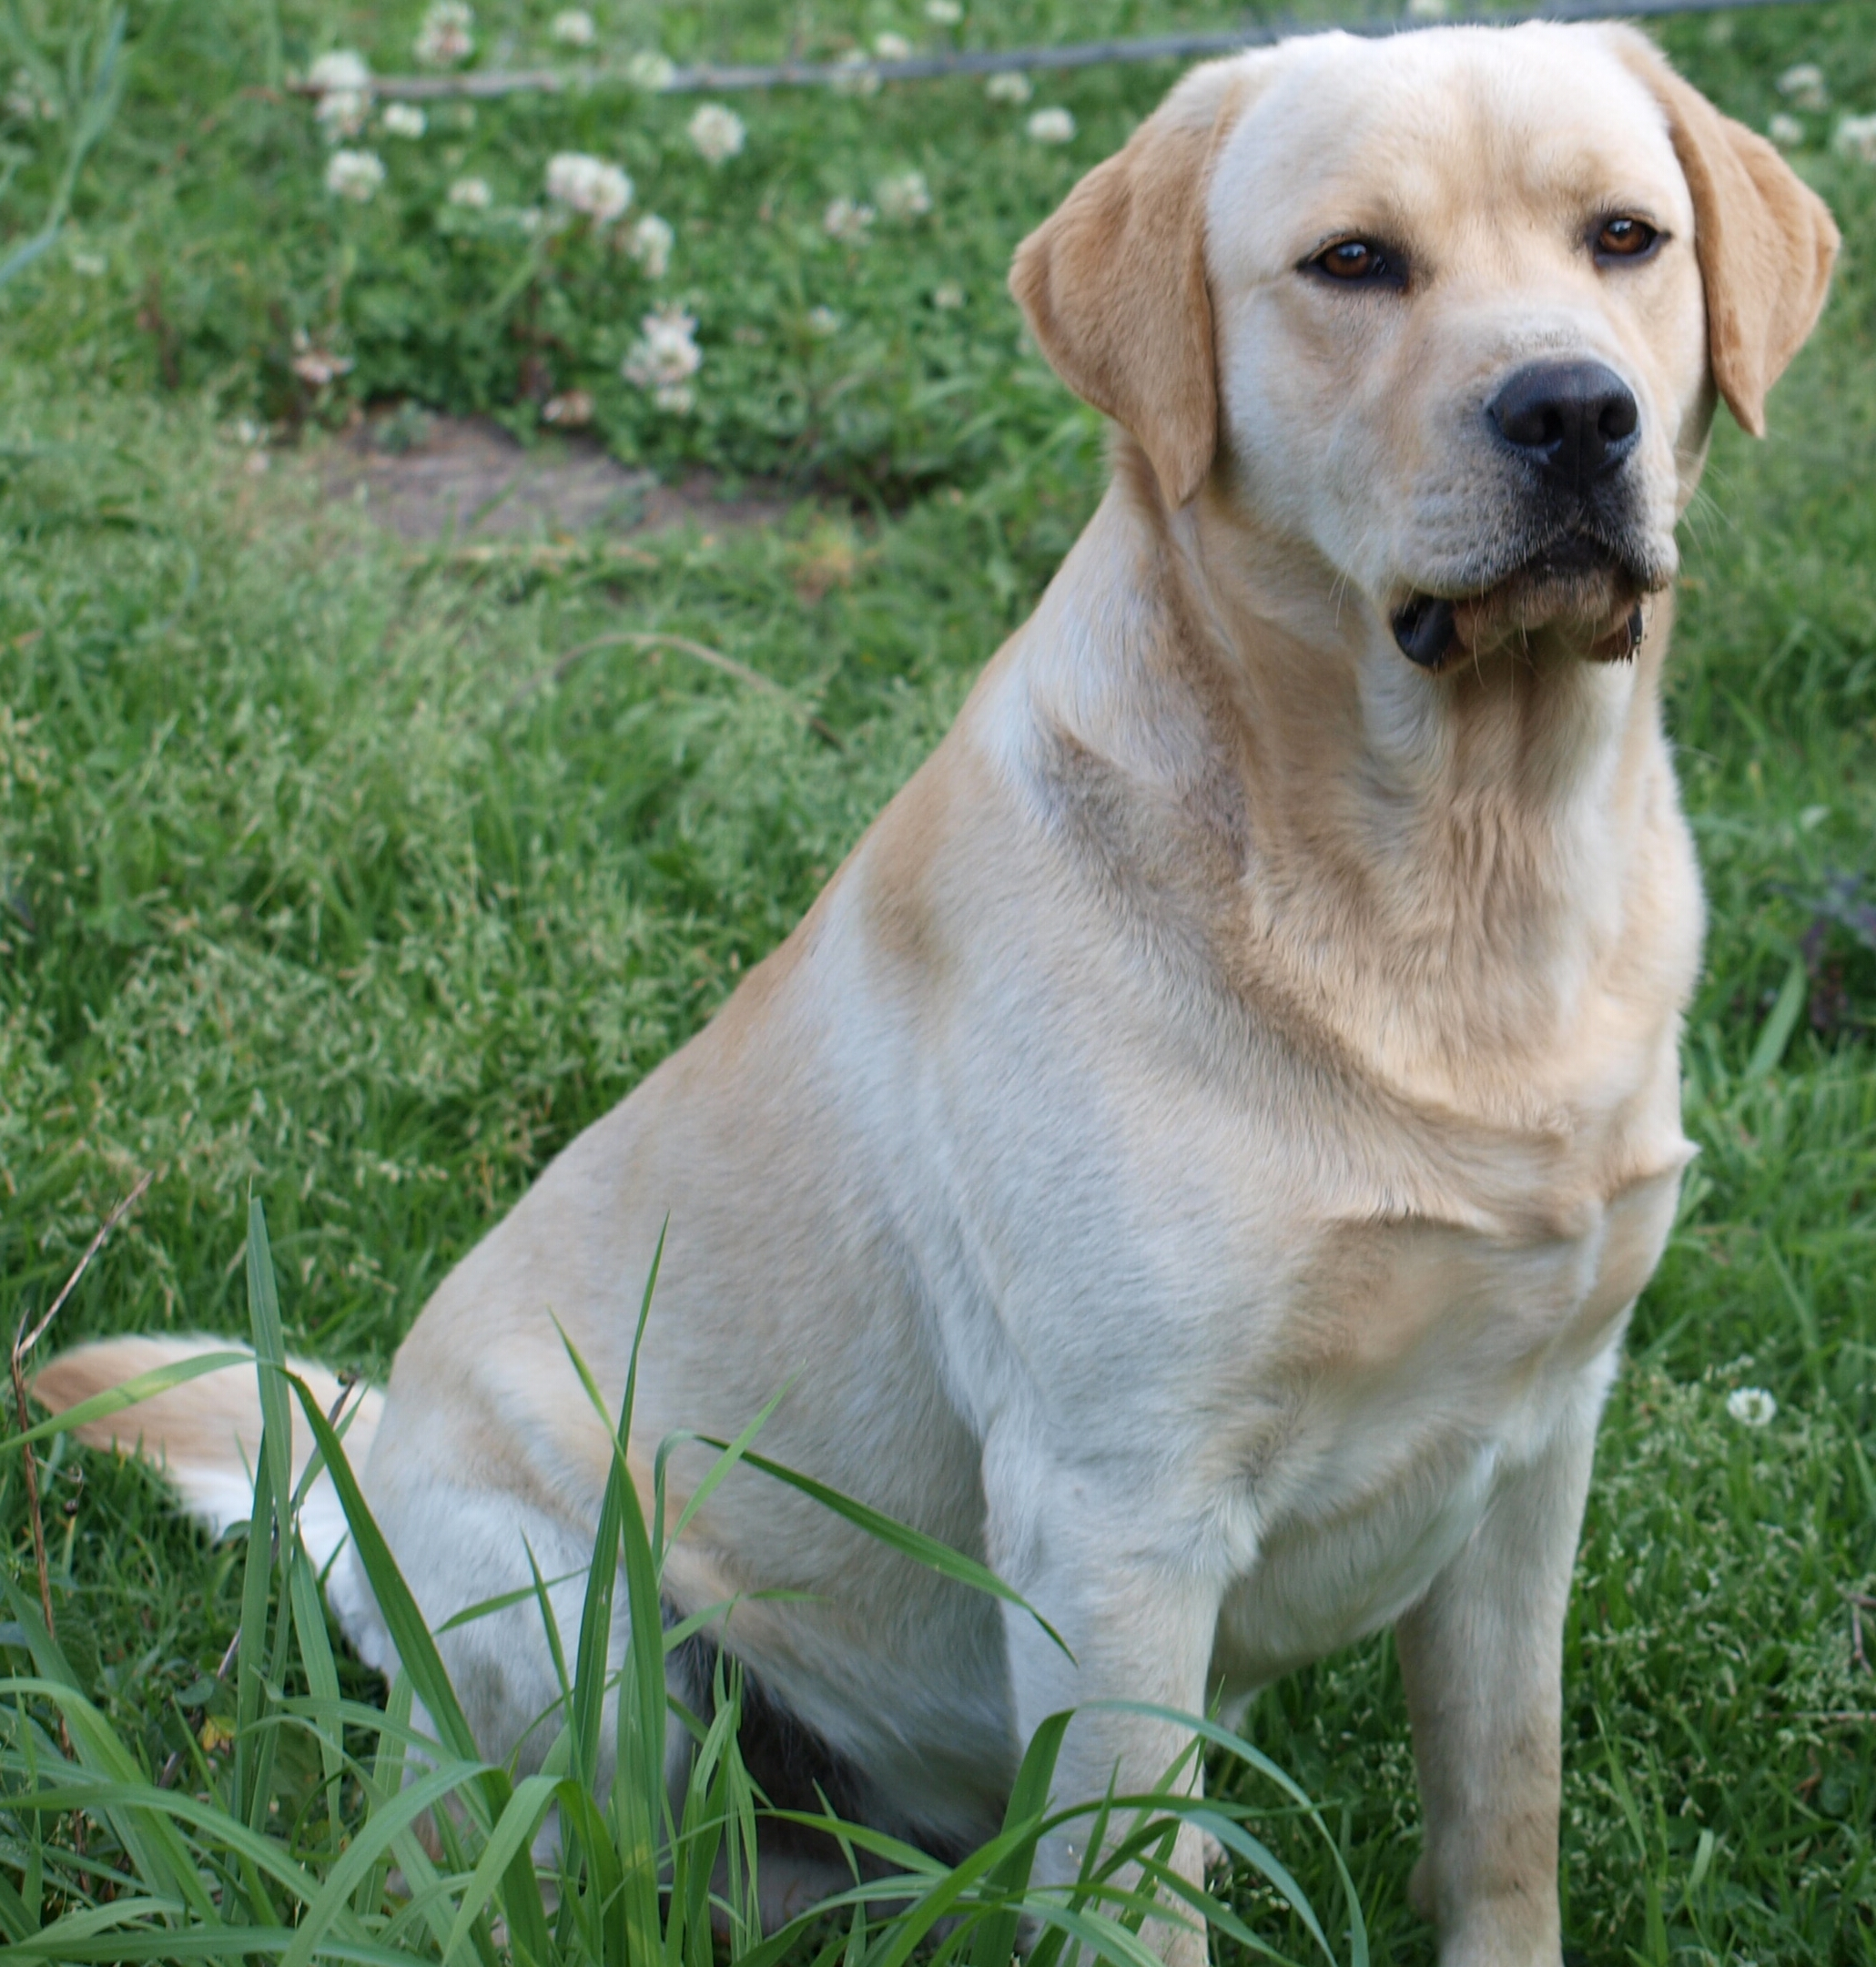 File:Labrador-retriever.jpg - Wikimedia Commons